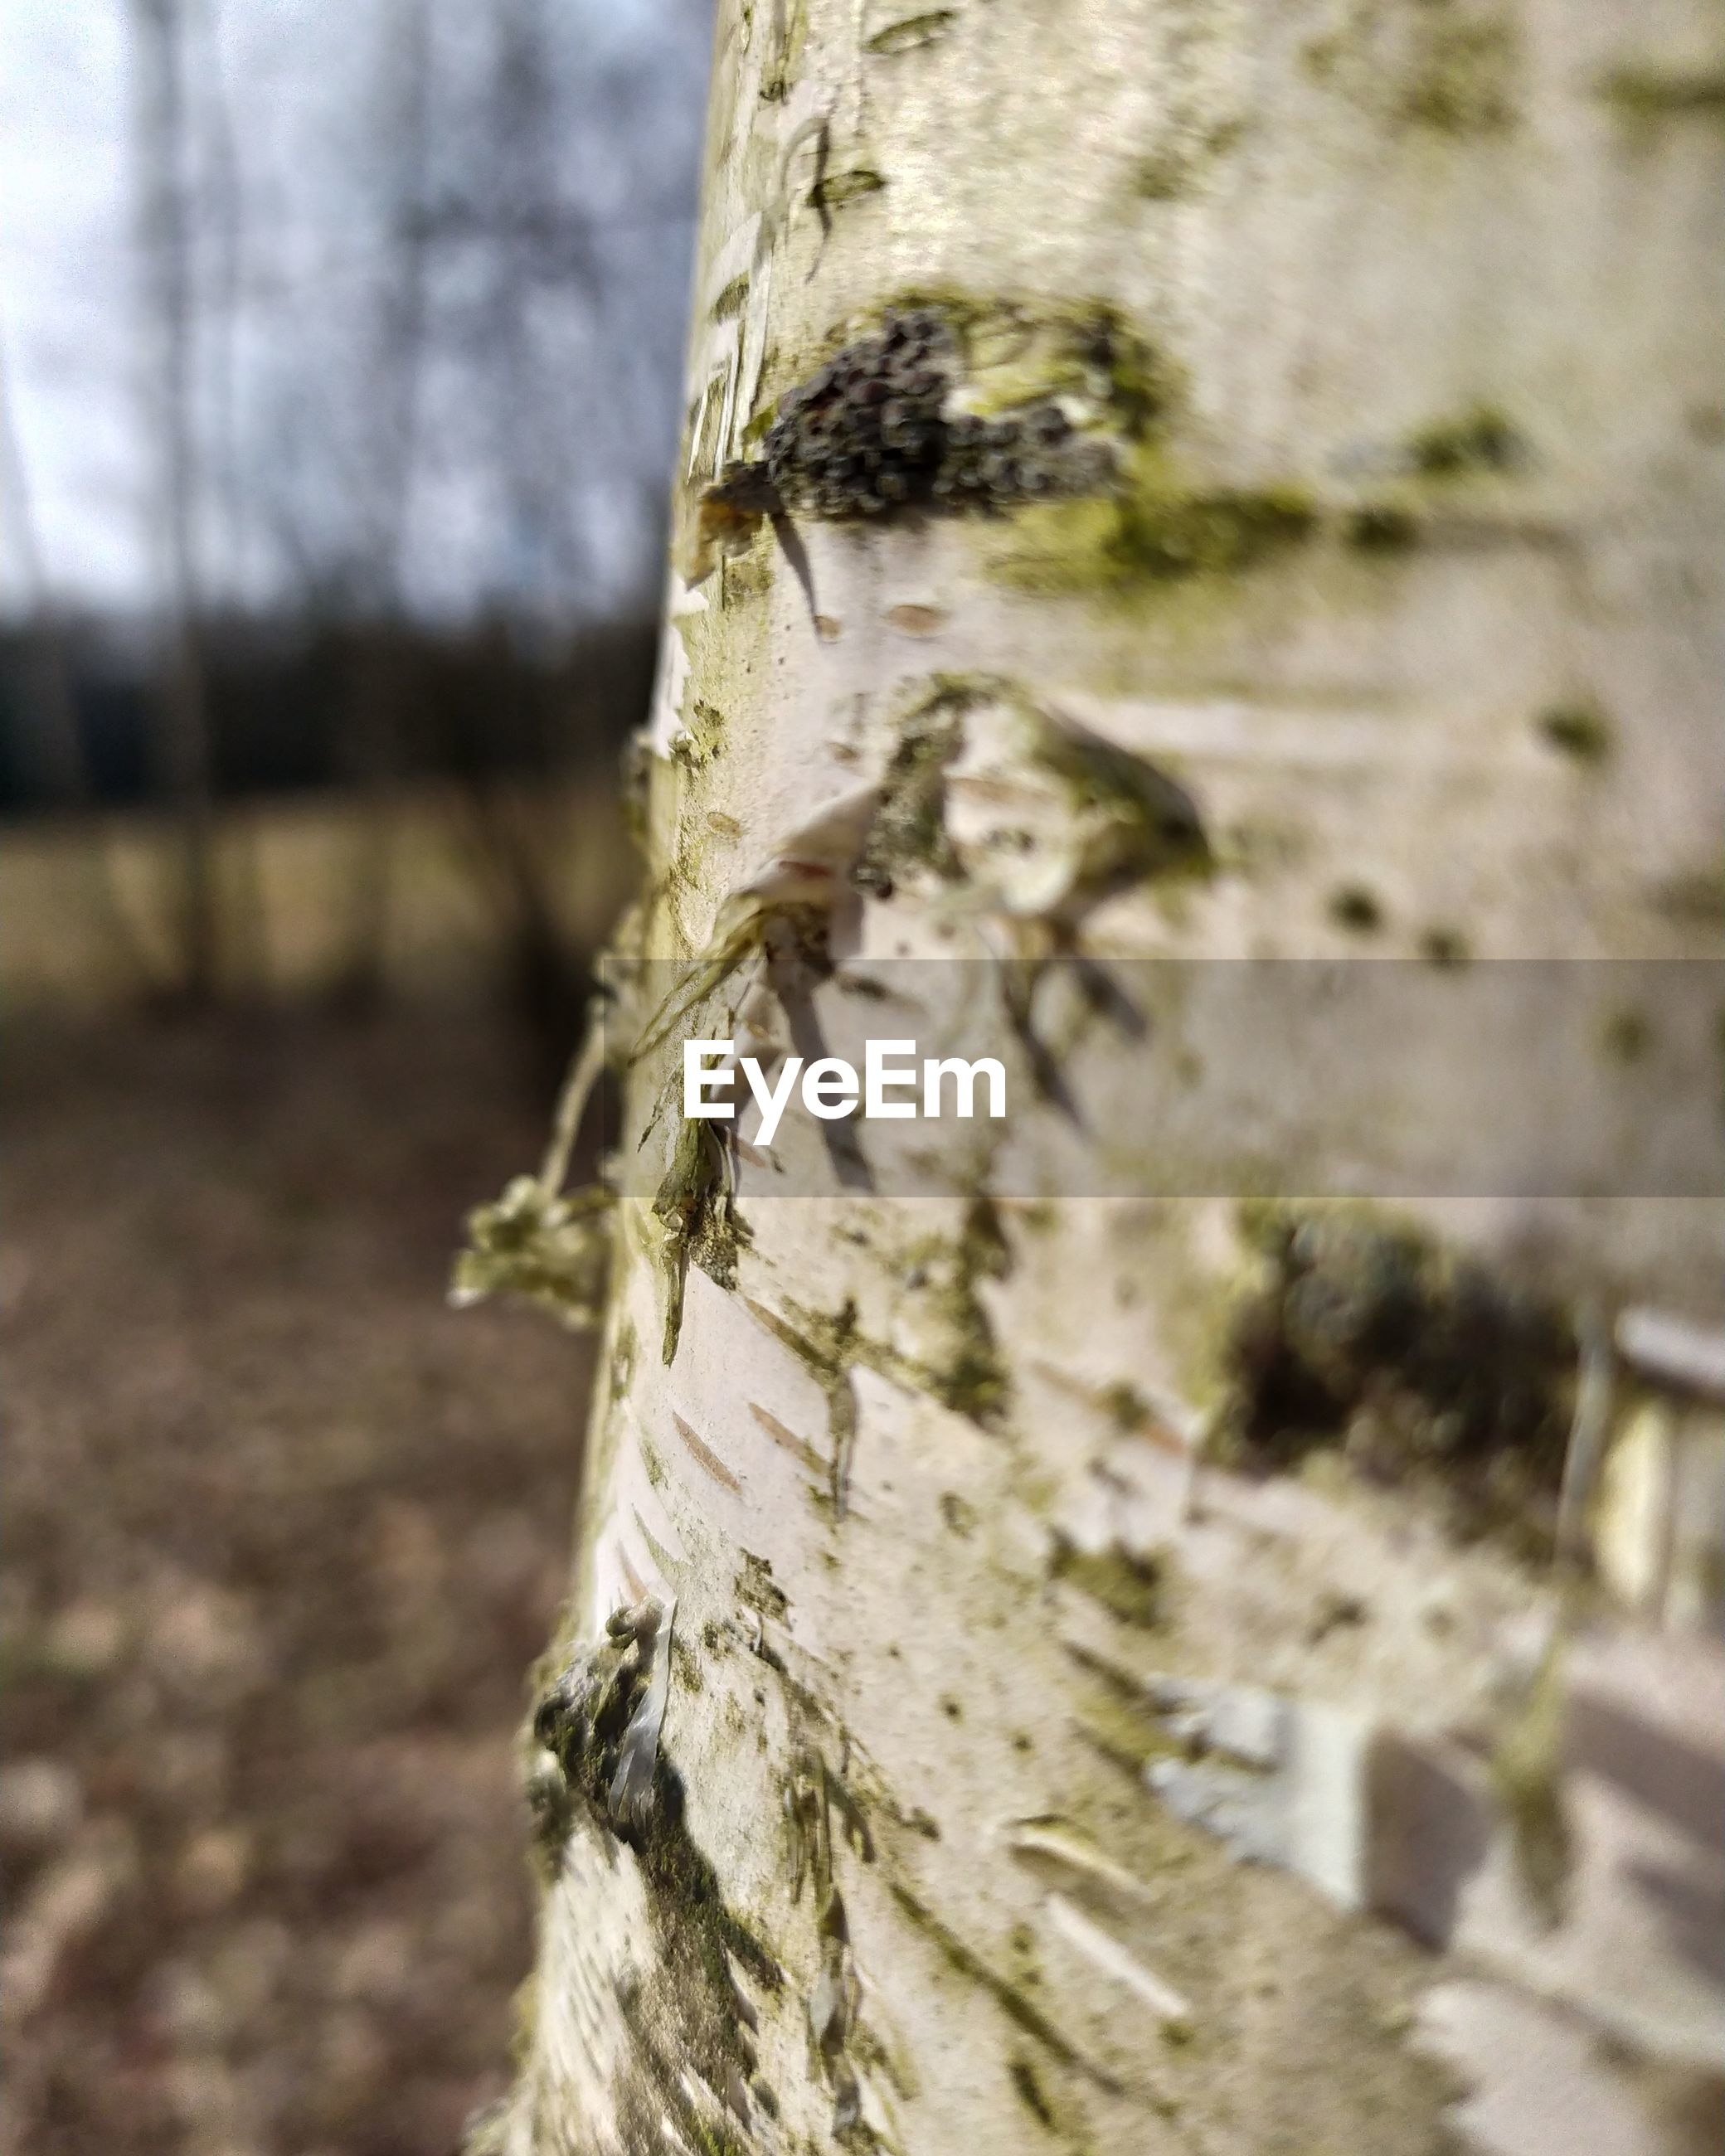 CLOSE-UP OF PLANT GROWING ON TREE TRUNK IN FOREST